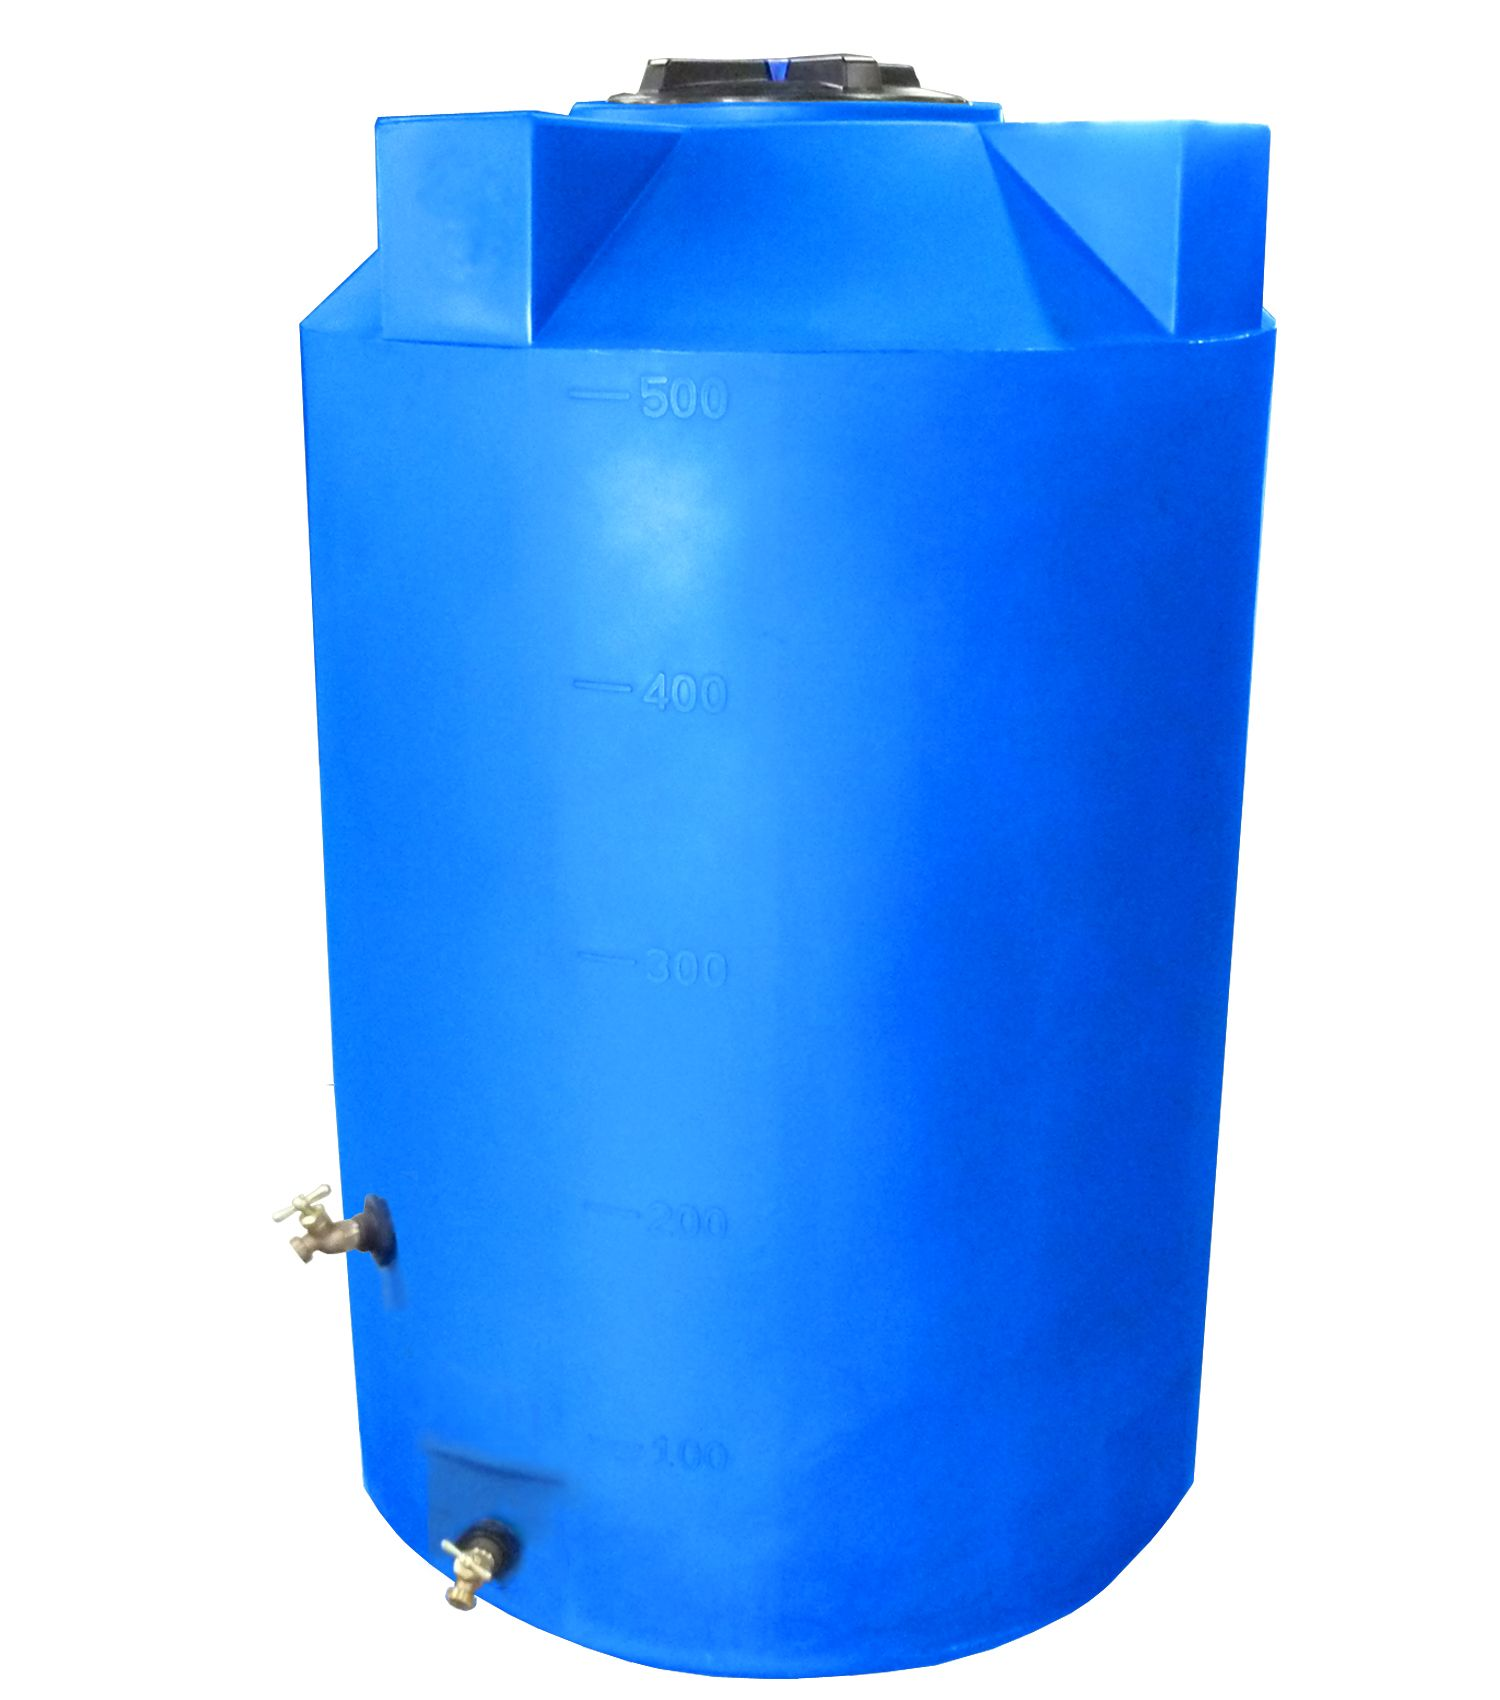 500 Gallon Emergency Water Storage Tank Equipped With All The Necessary Fittings Needed To Store An Emergency Water Storage Tanks Water Storage Storage Tank